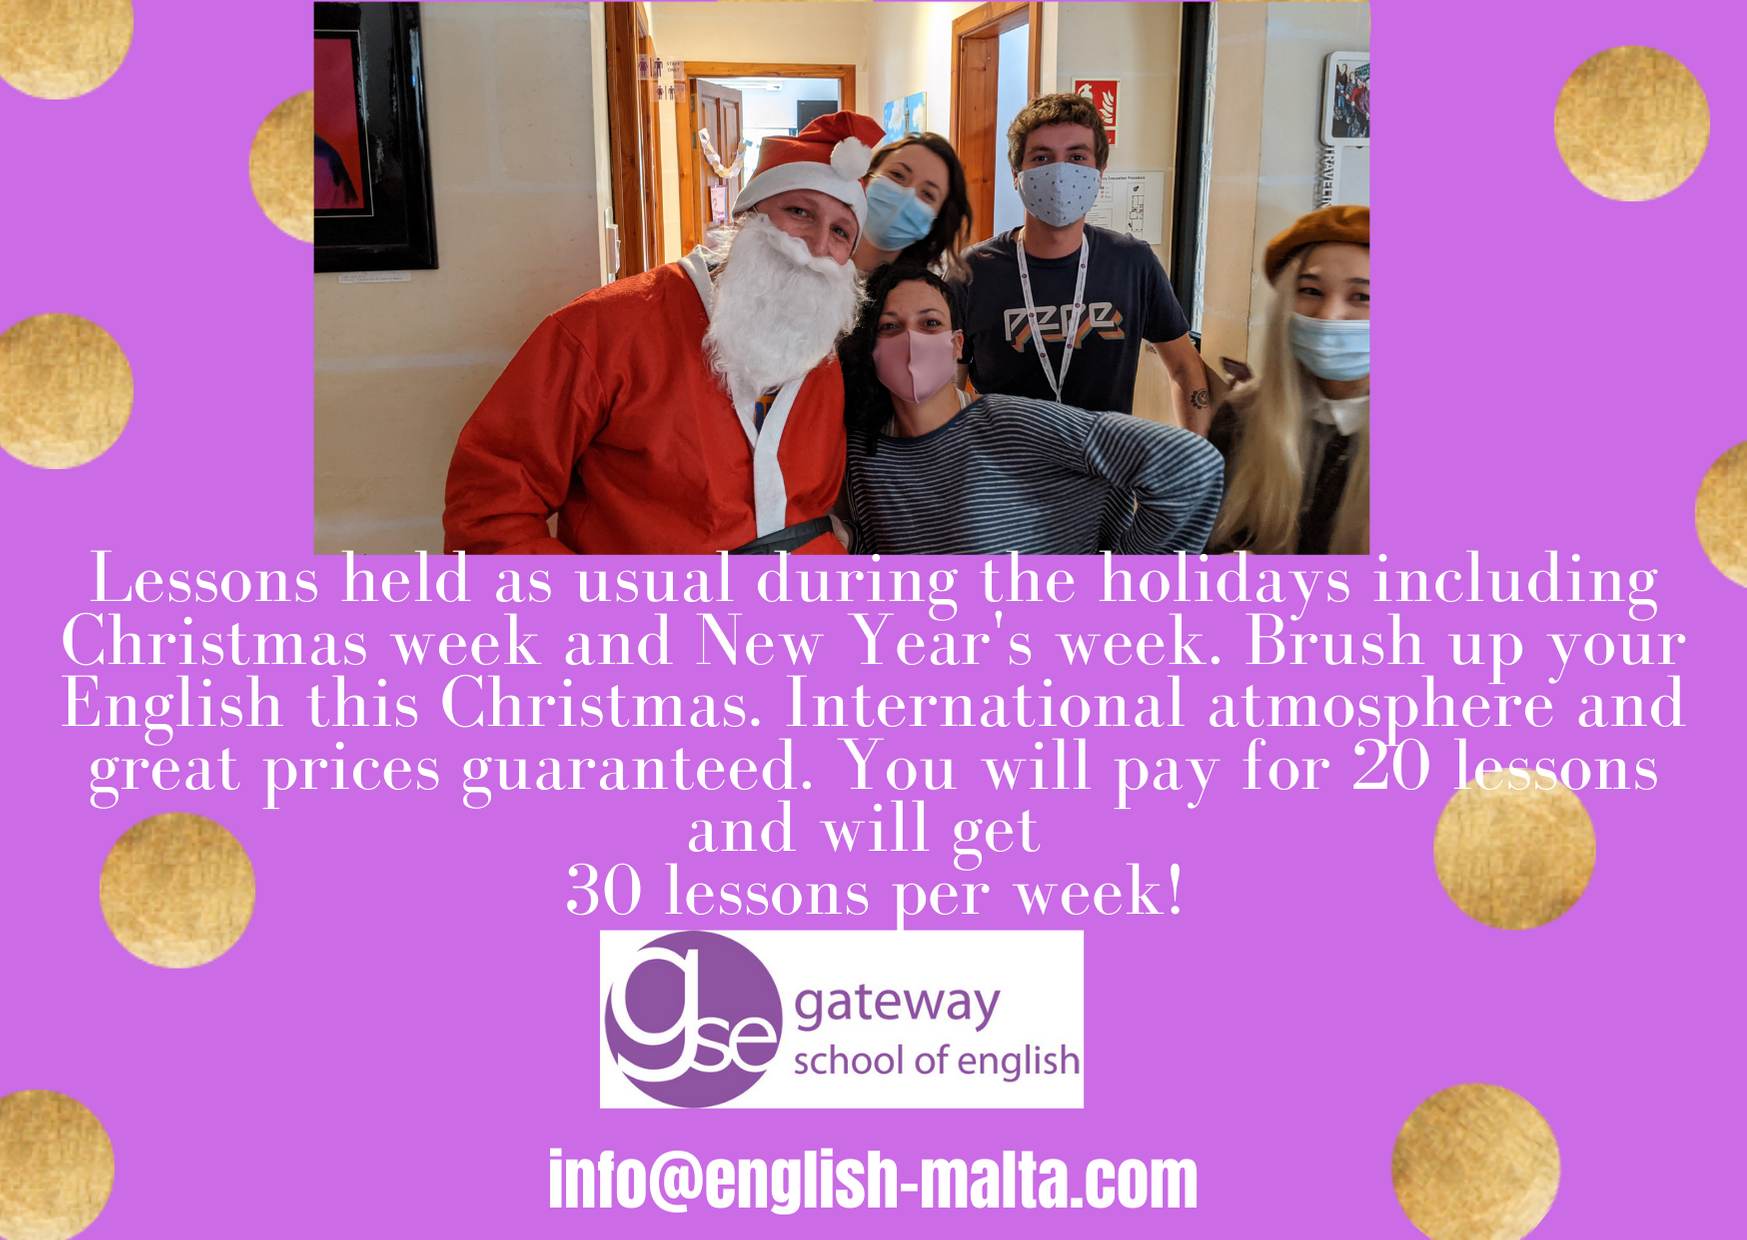 Learn English this Christmas with Gateway School of English GSE and make friends in Malta